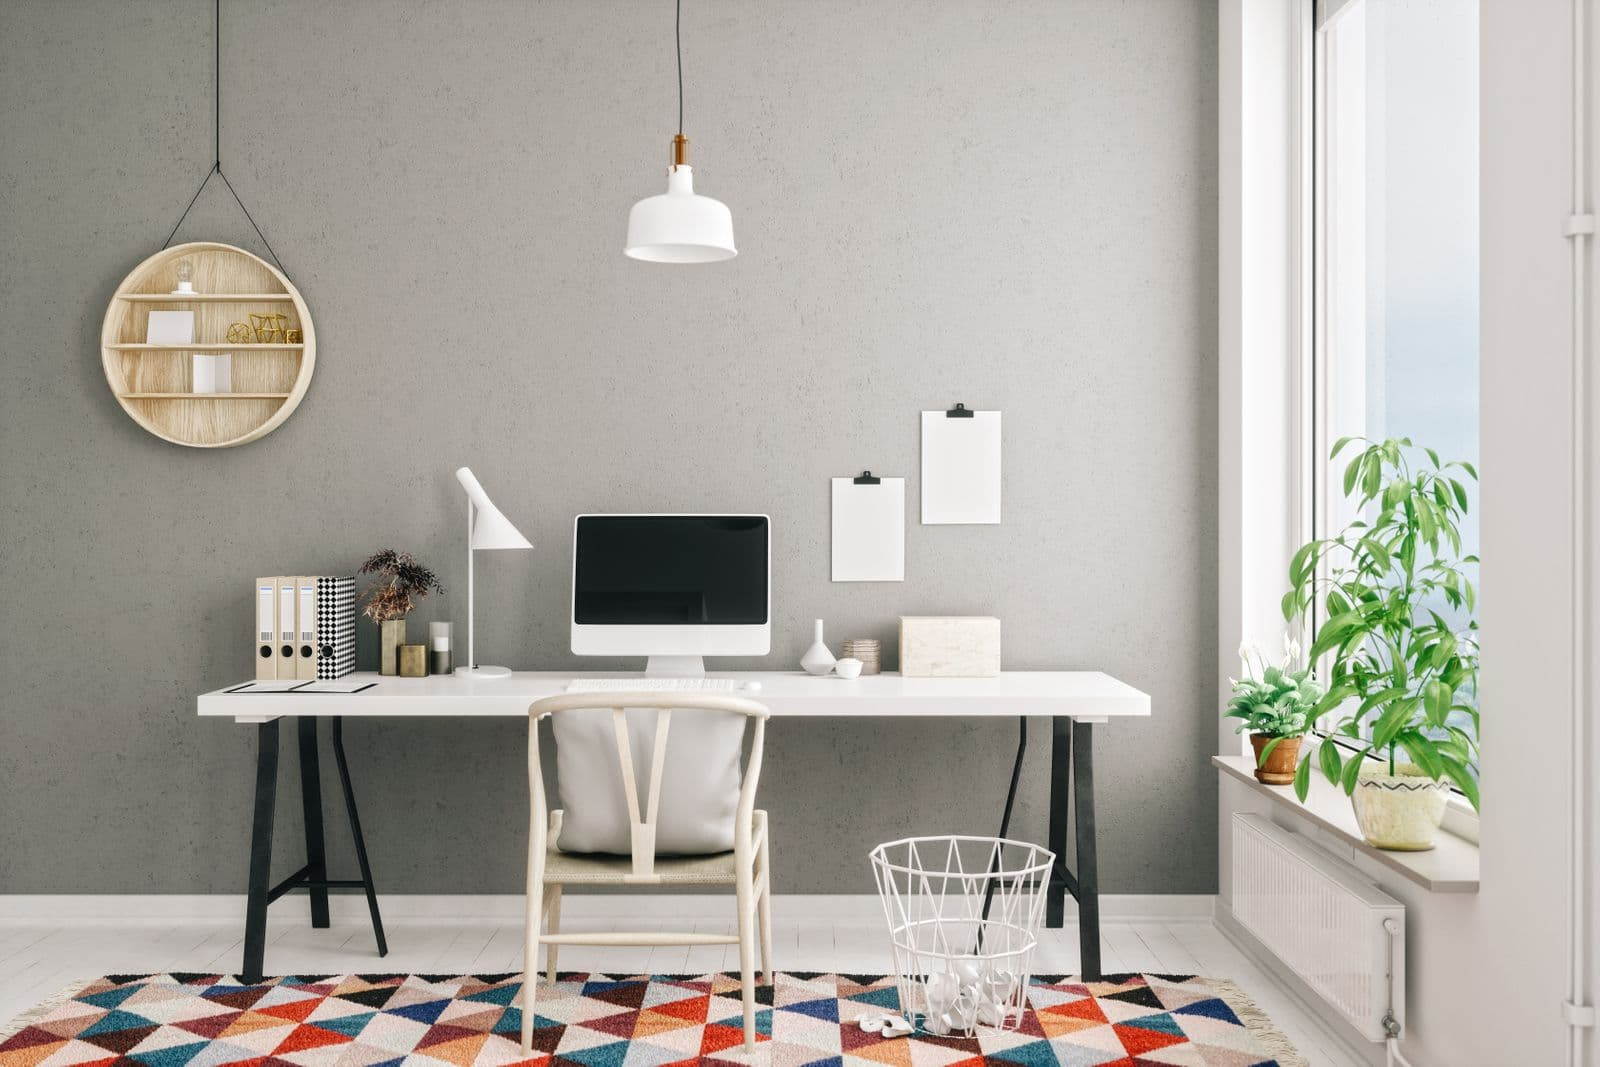 Home office with a colorful rug